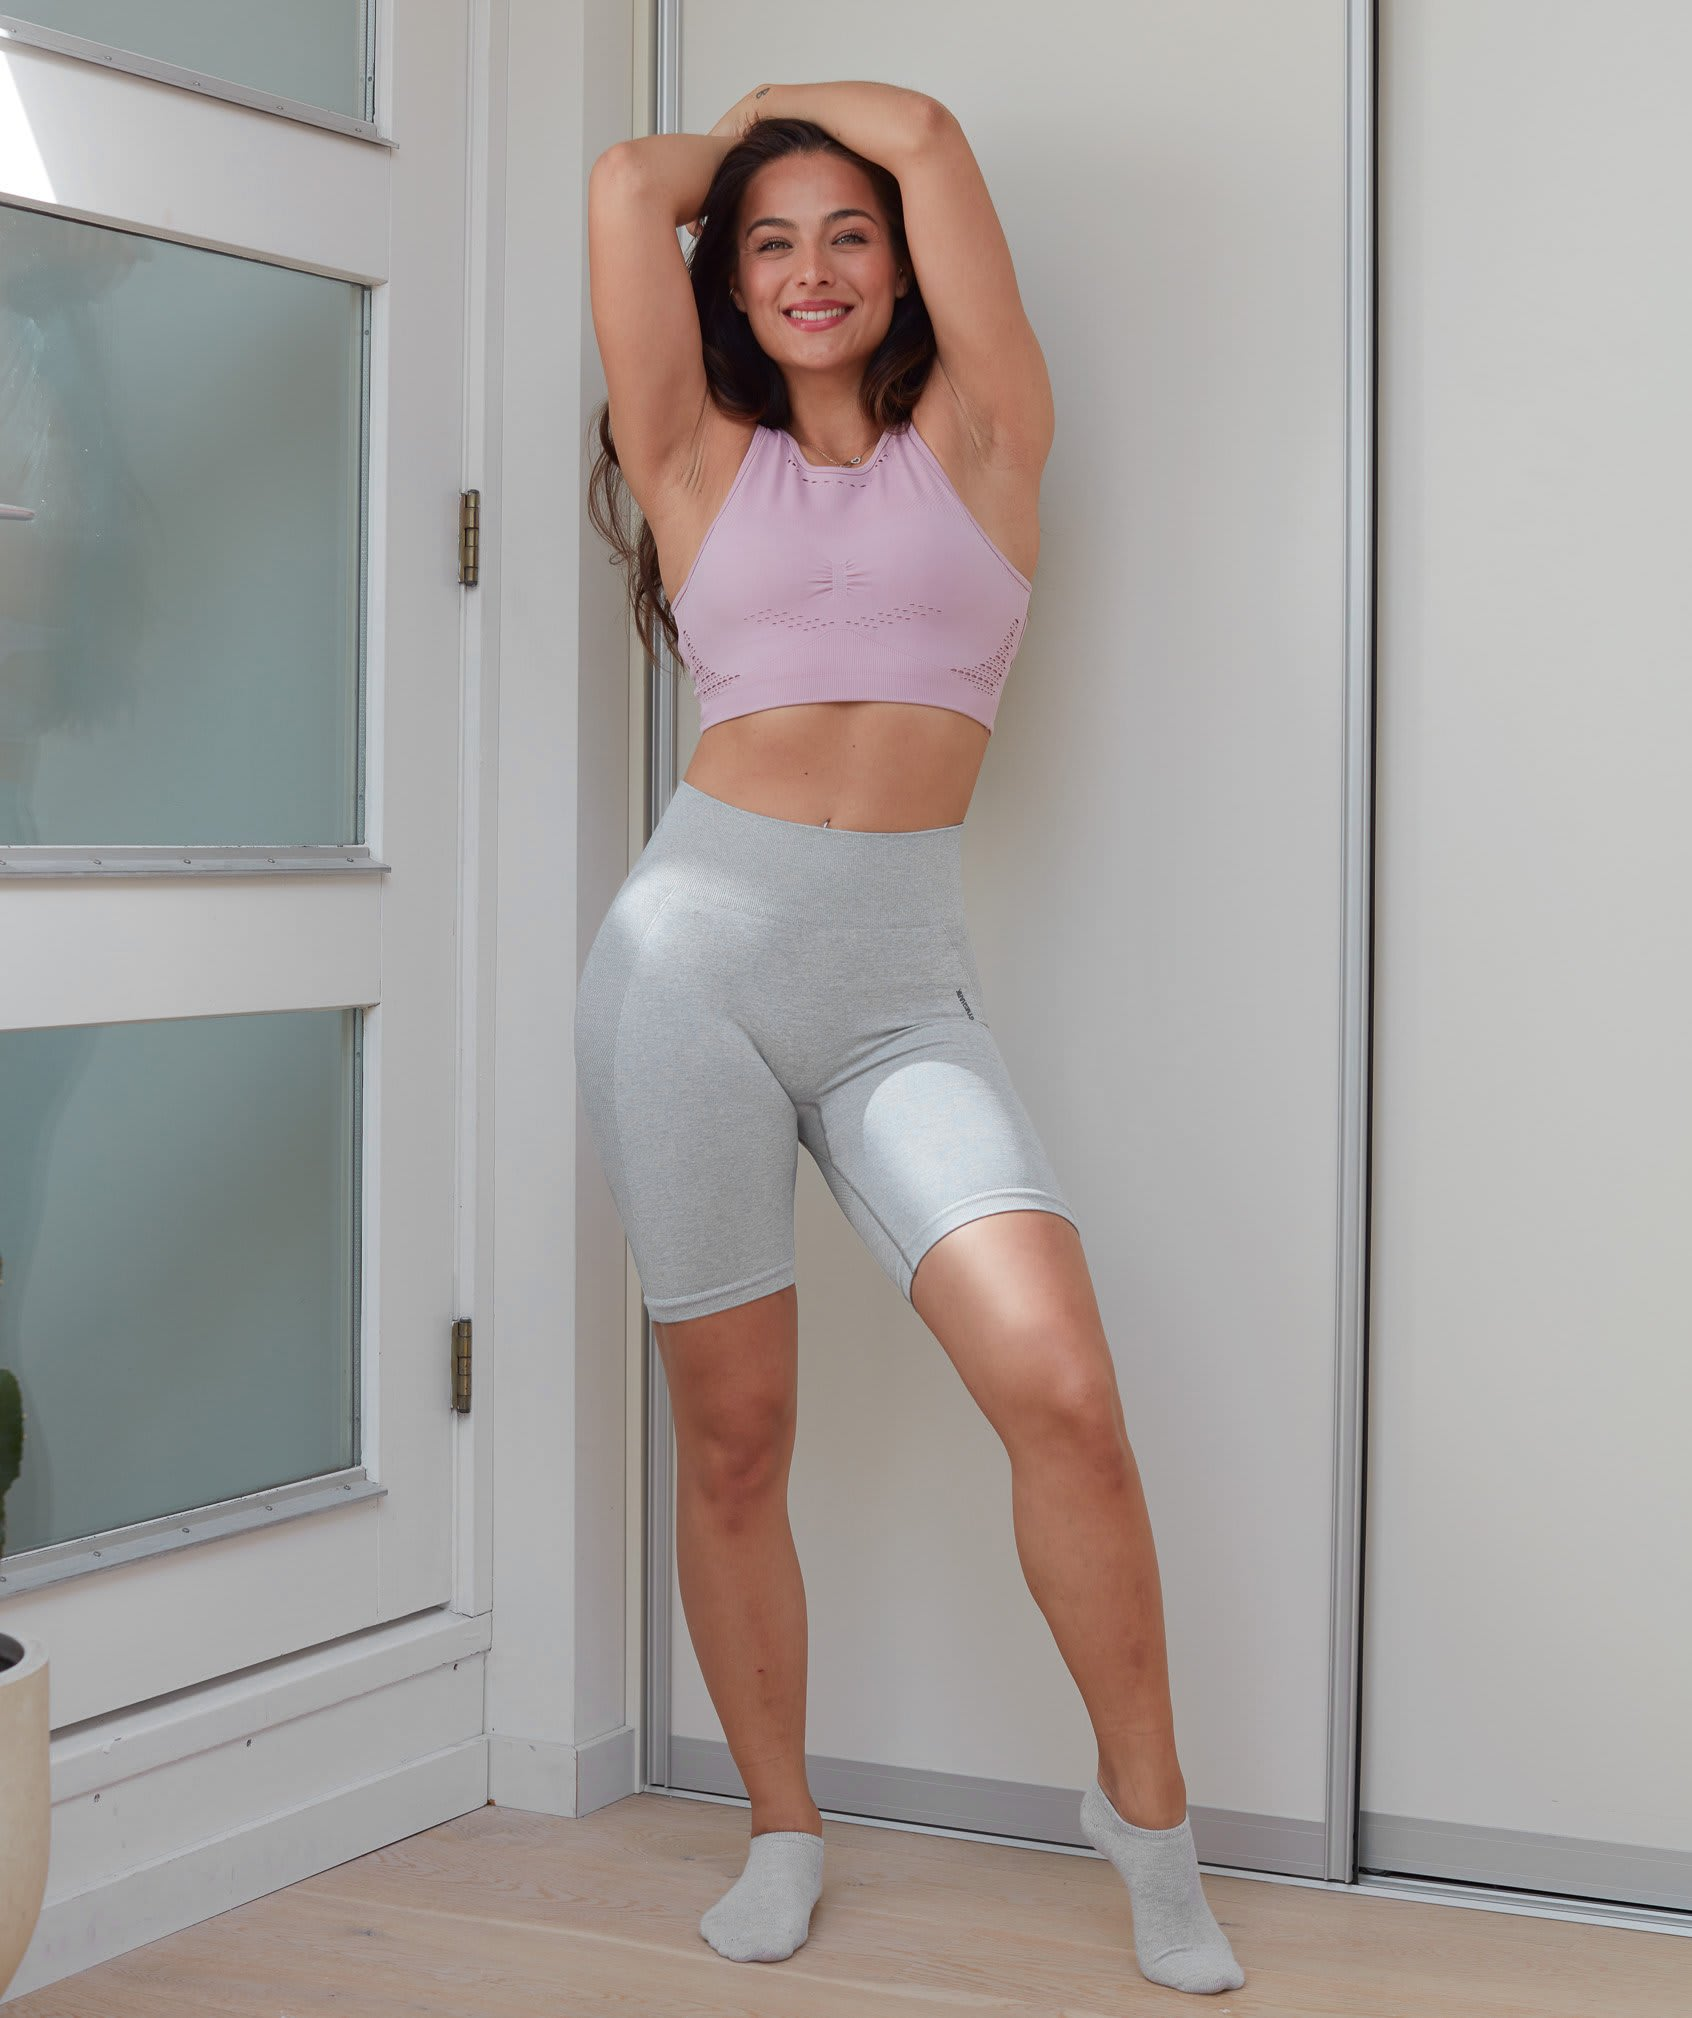 FLEX CYCLING SHORTS by Gymshark, available on gymshark.com for $45 Kendall Jenner Shorts Exact Product